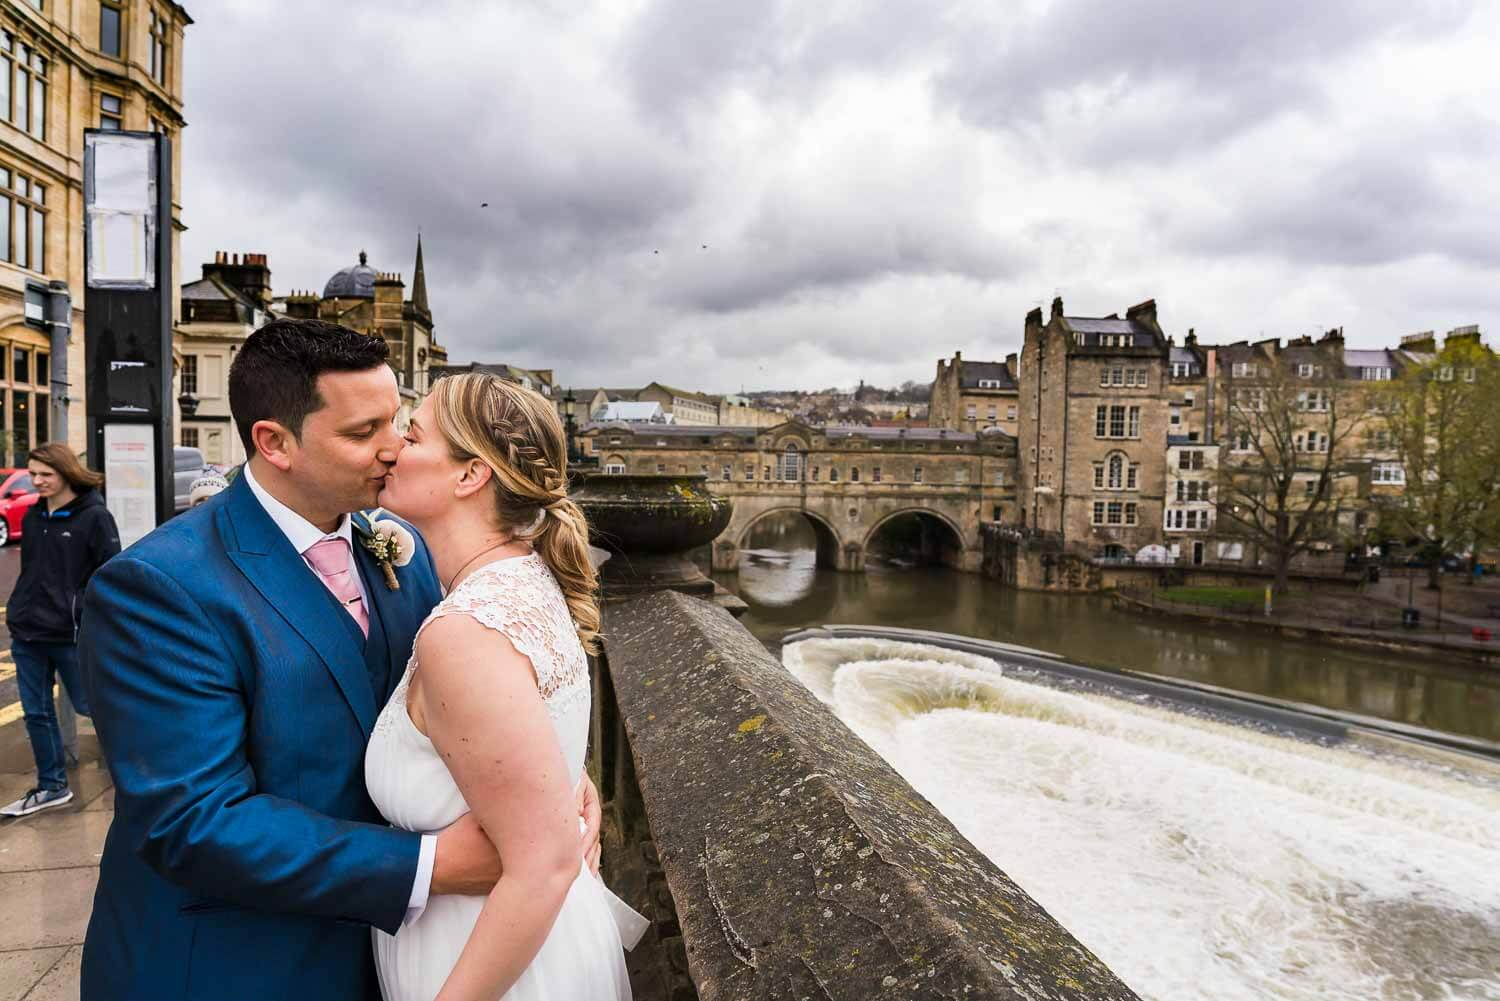 Bristol and bath wedding photography, Bristol and bath wedding photographer, wedding photography prices, wedding photography packages, wedding photography reviews